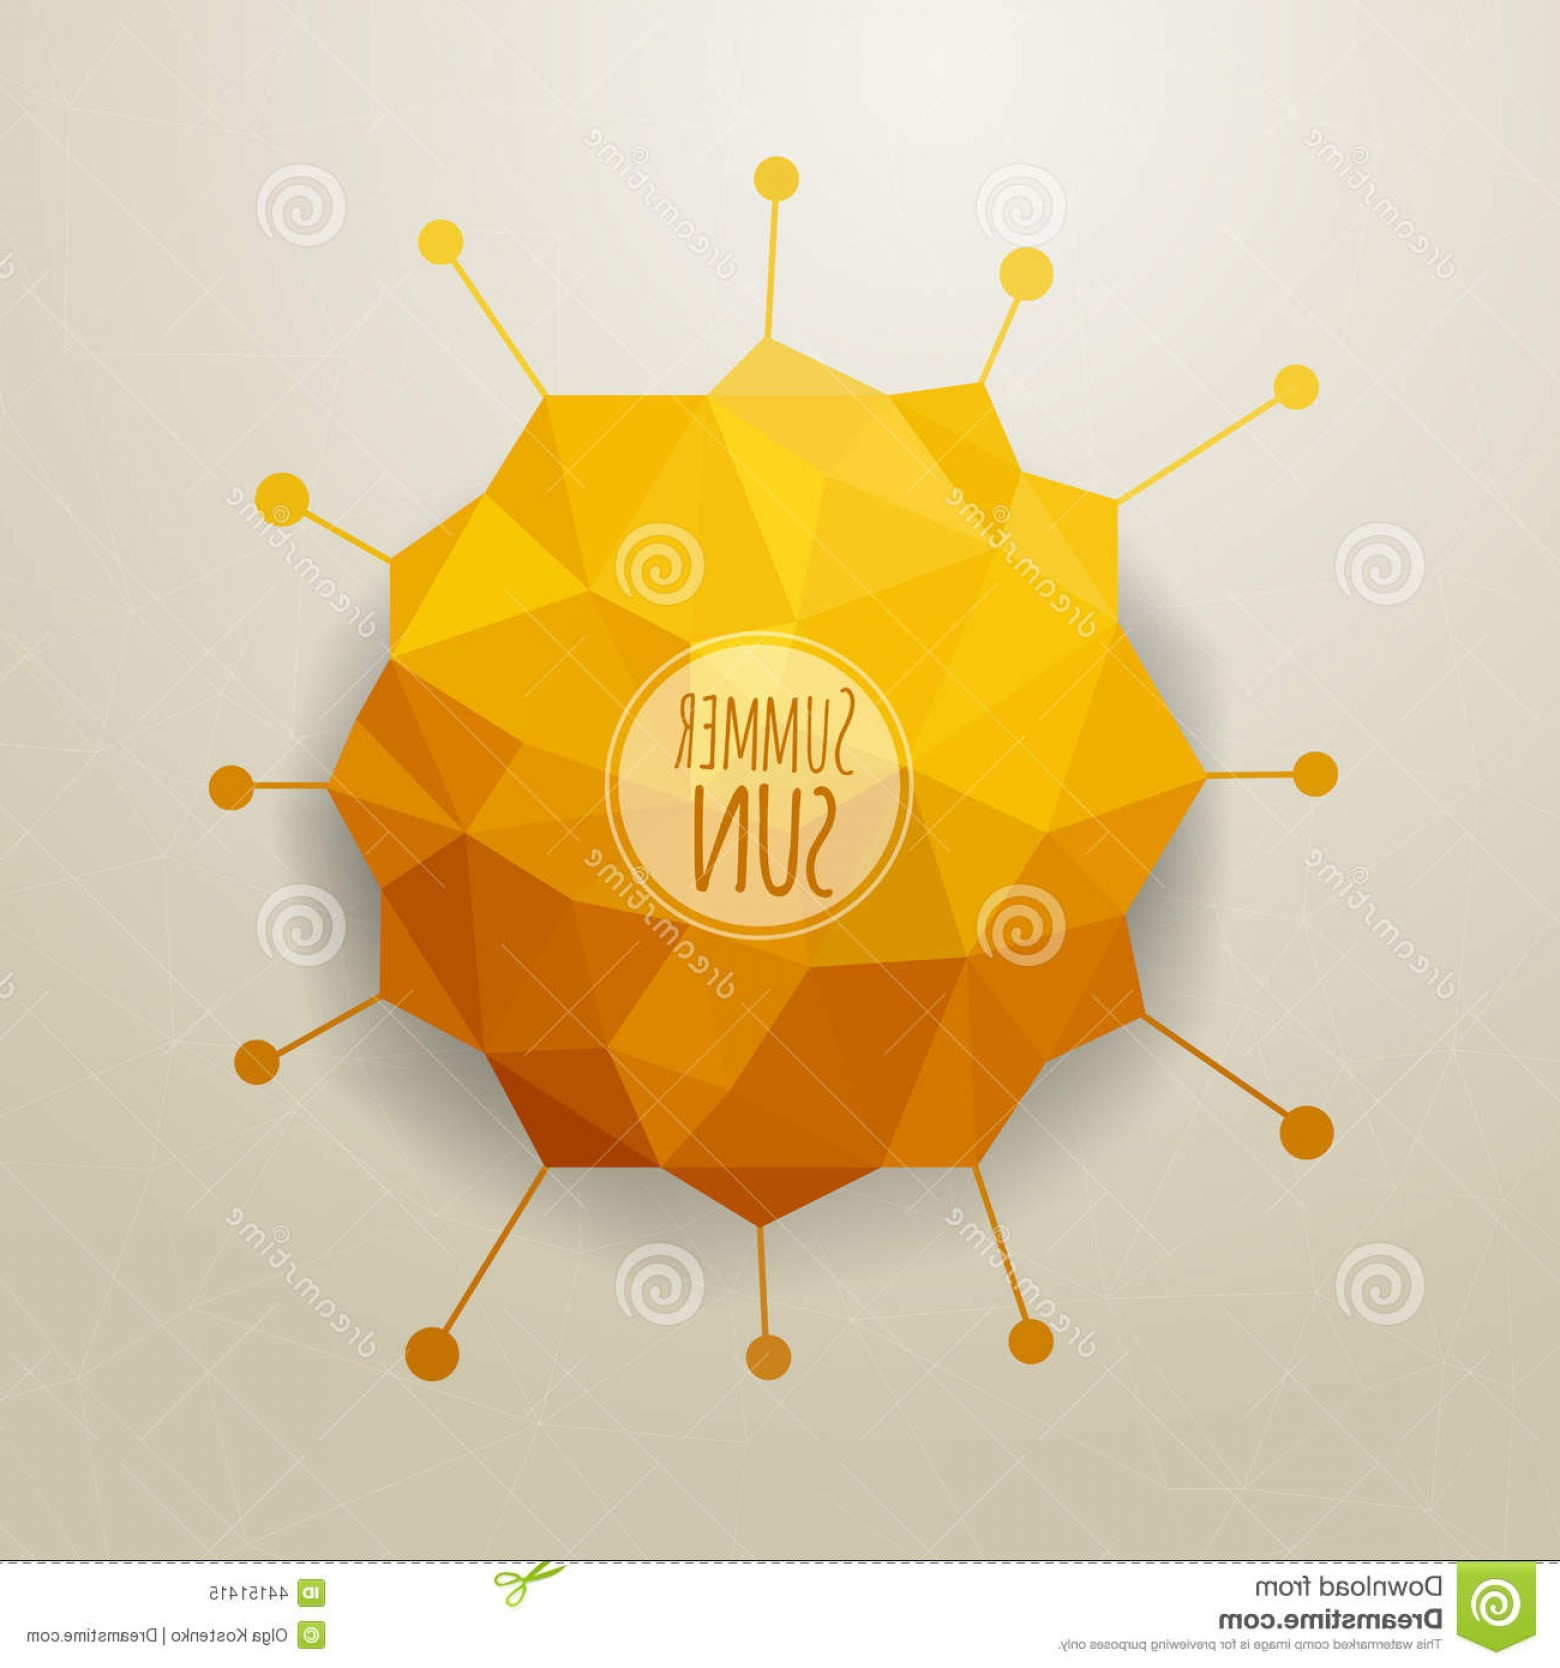 Geometric Sun Vector: Stock Illustration Vector Abstract Triangle Summer Sun Geometric Background Design Image